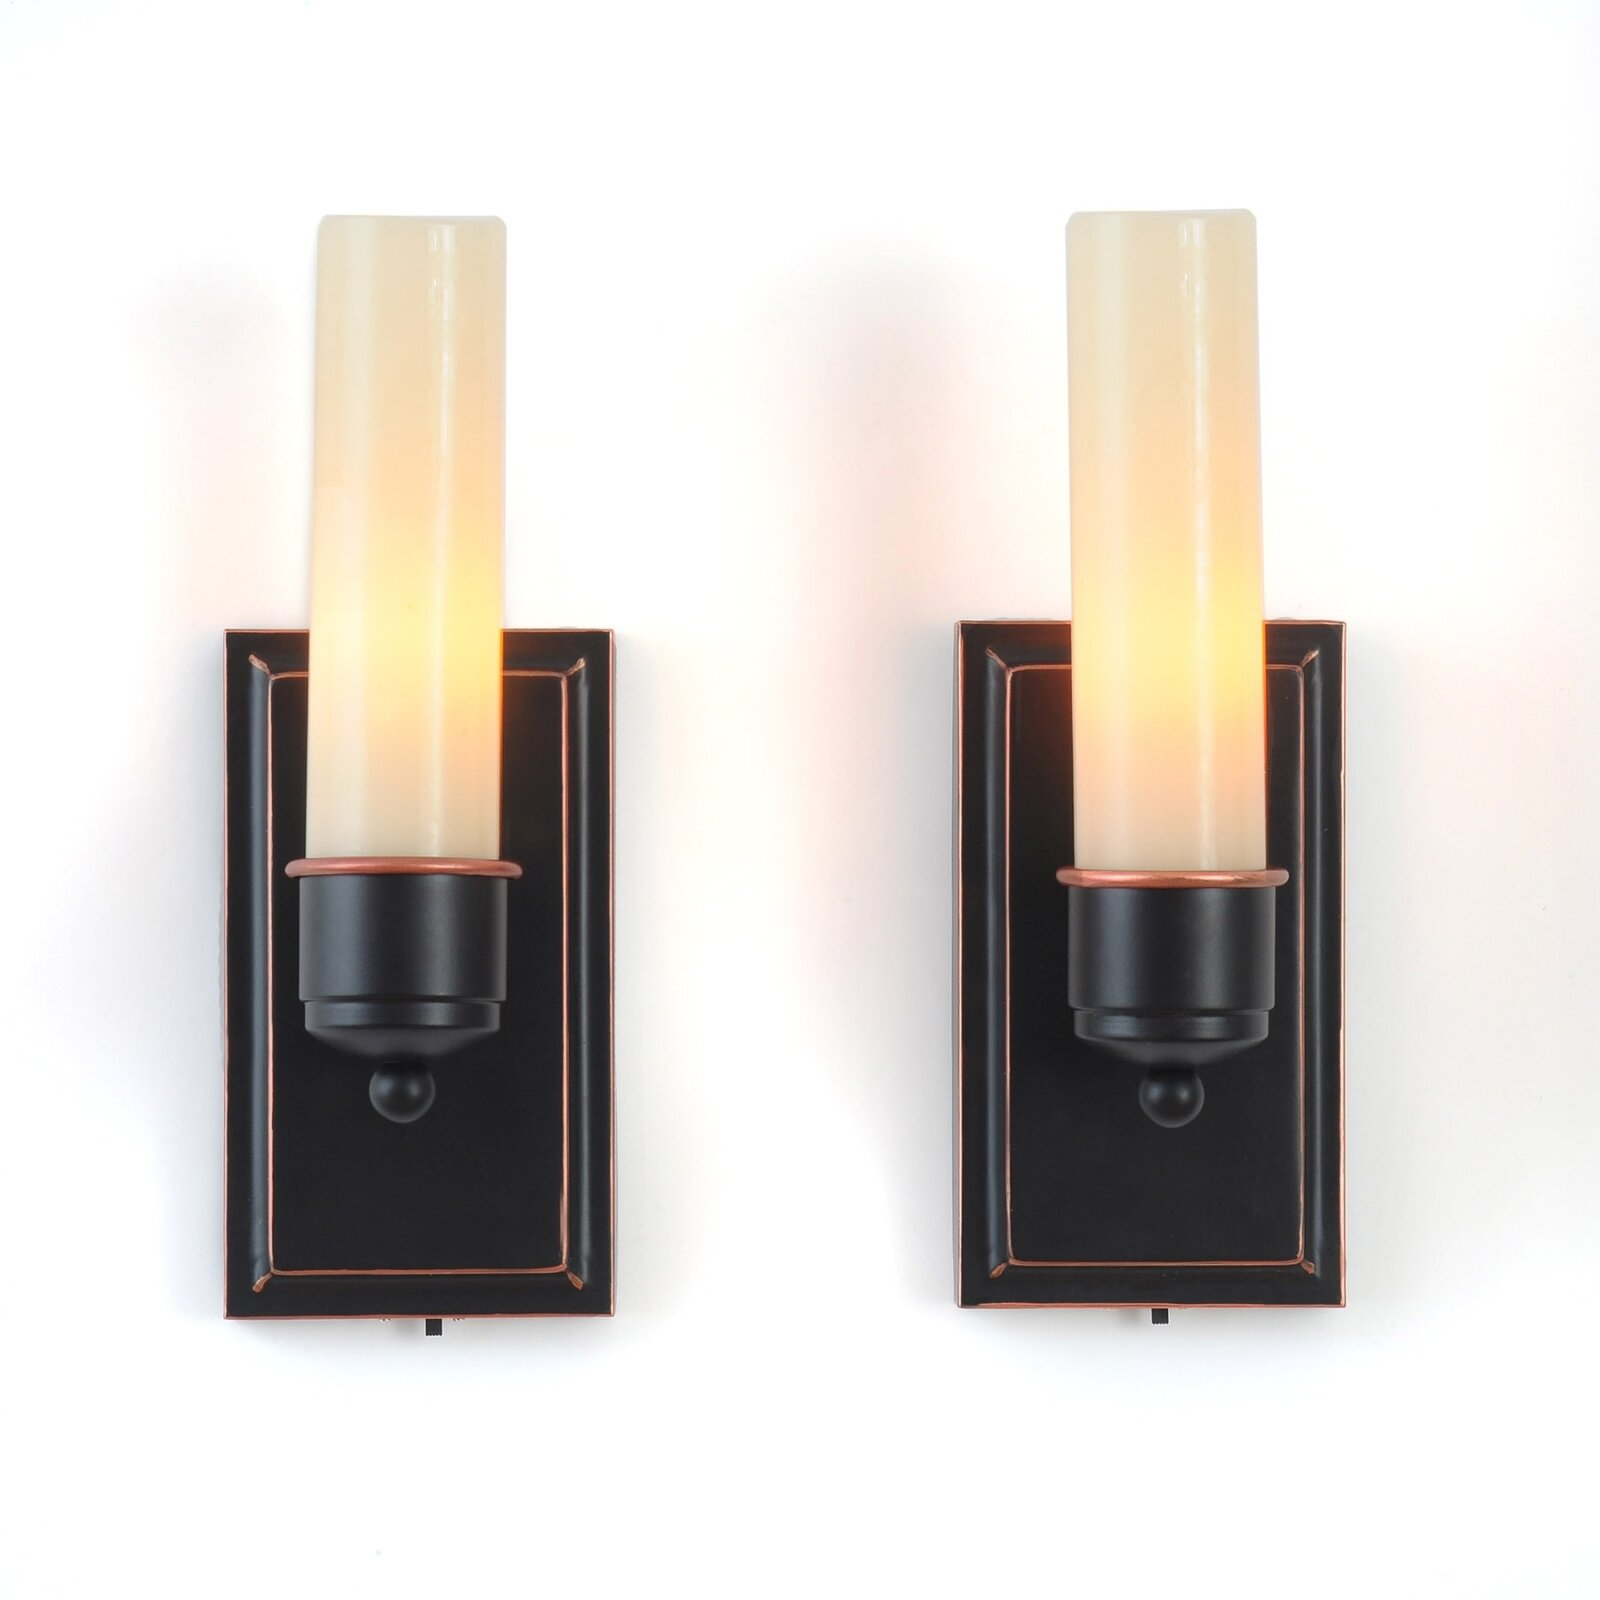 Lion Sports CandleTEK Wall Sconces Flameless Candles Set of 2 eBay